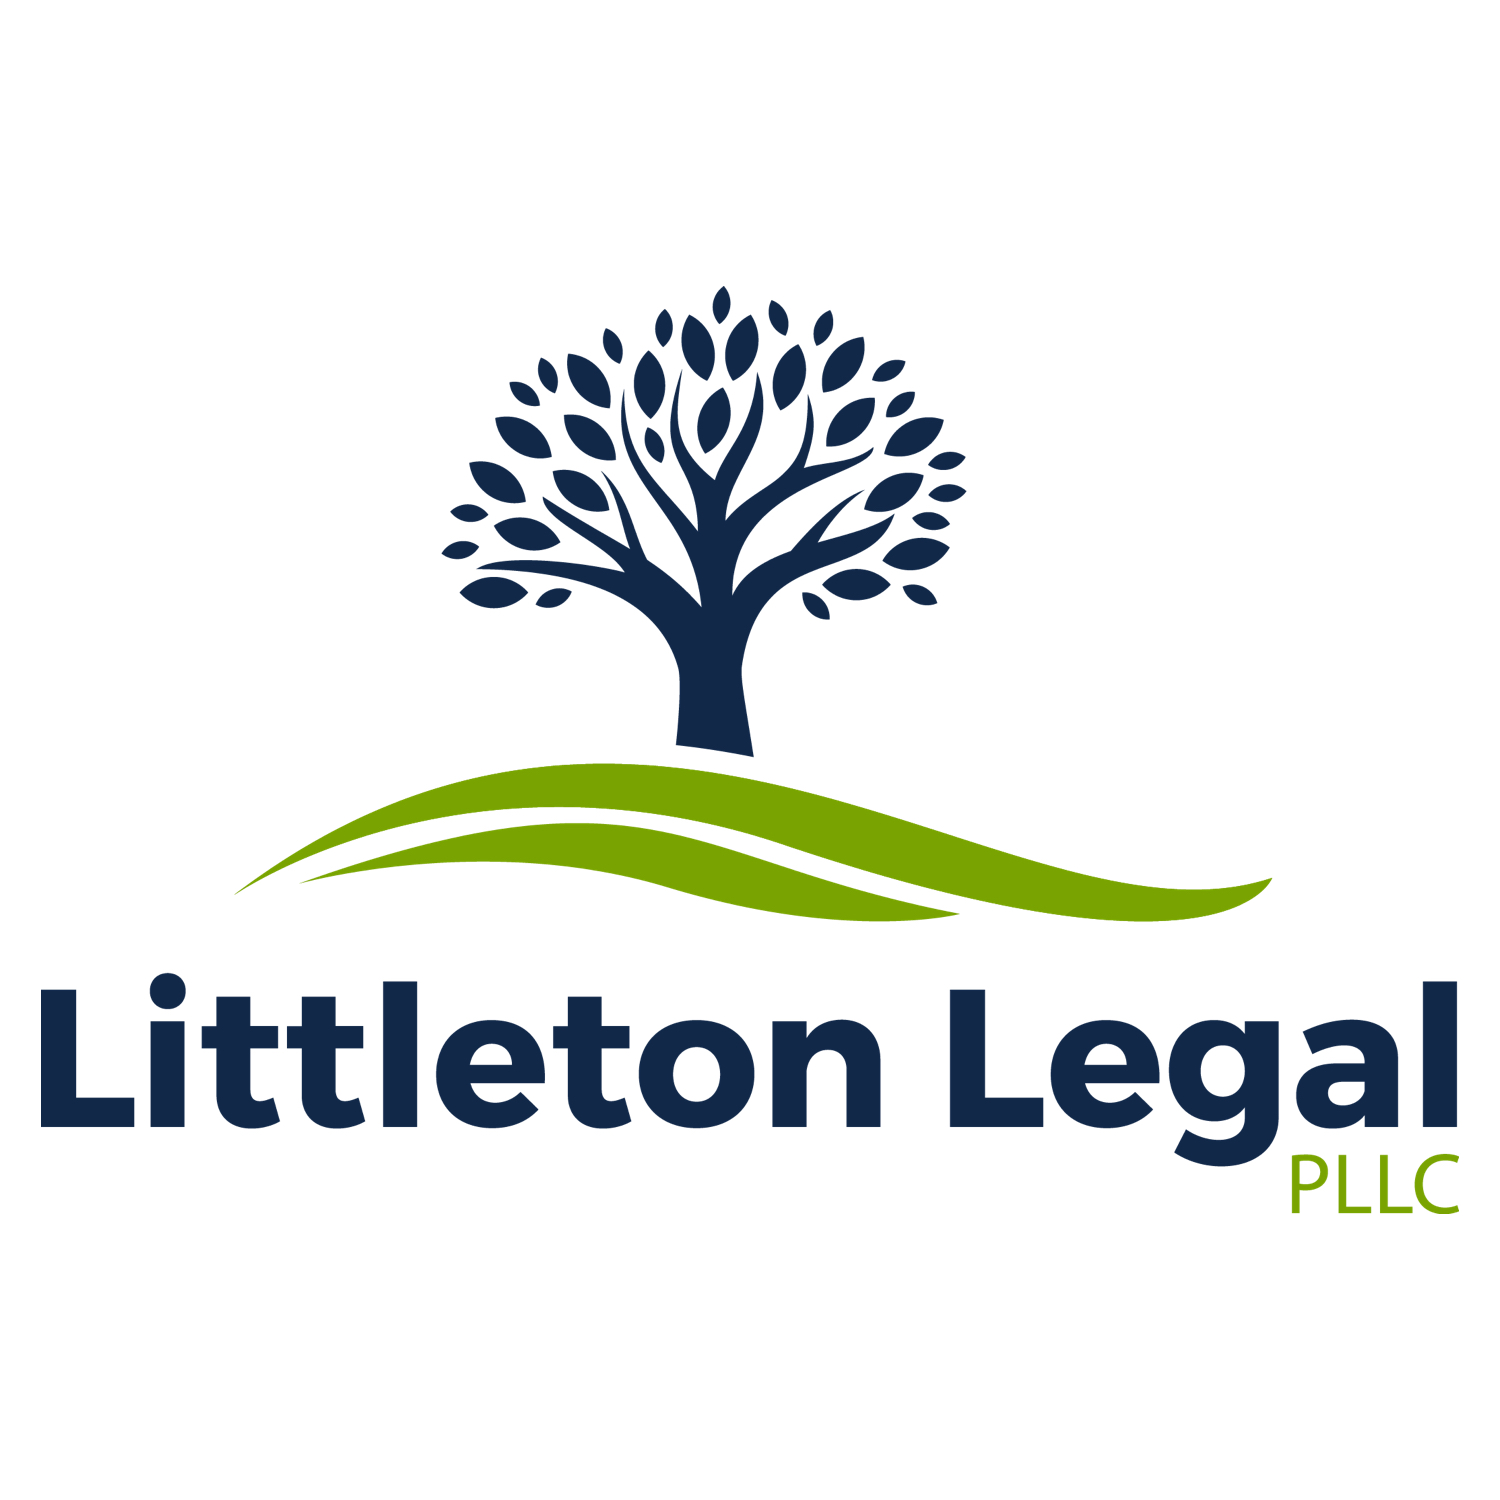 Littleton Legal   Littleton Legal helps families and businesses thrive through efficient and effective legal services related to estate planning and business law transactions.